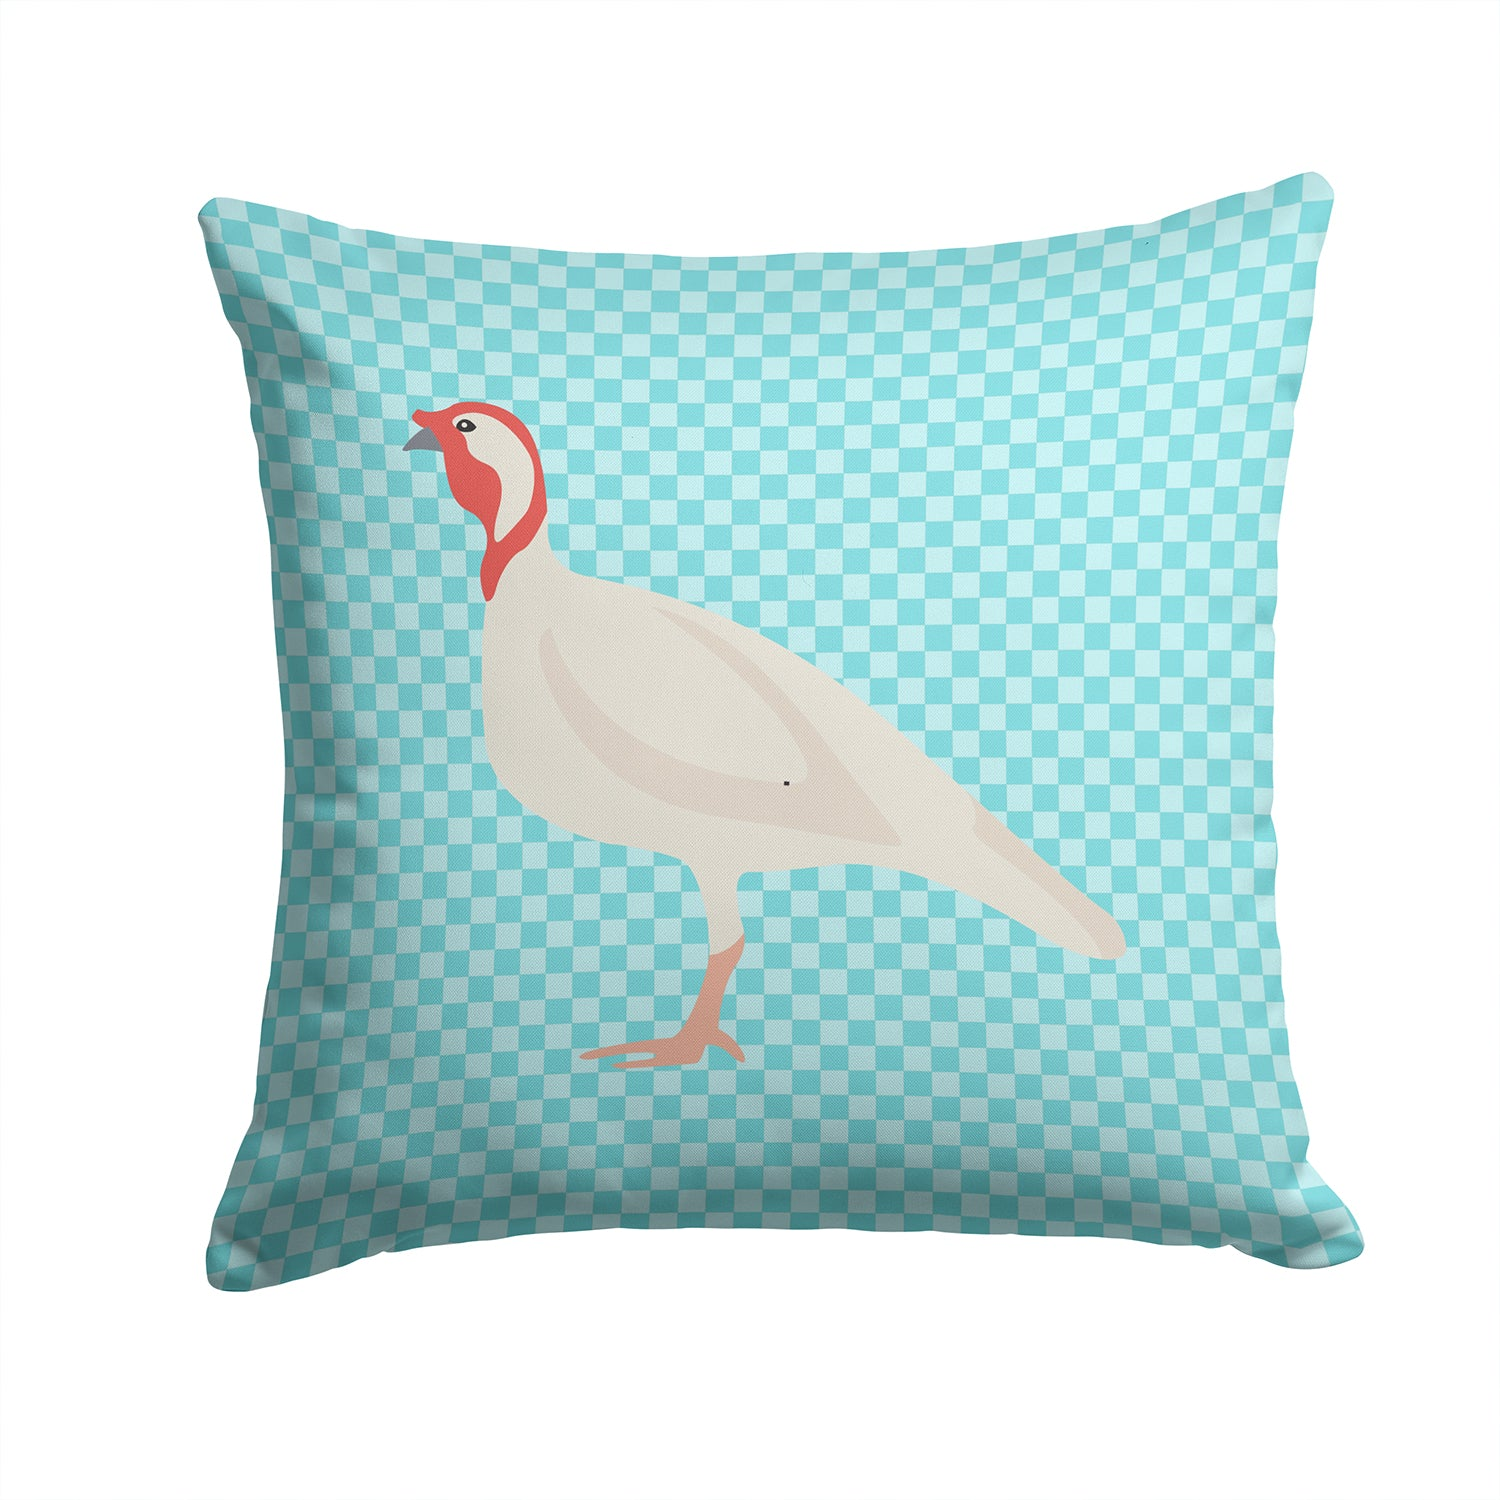 Beltsville Small White Turkey Hen Blue Check Fabric Decorative Pillow BB8163PW1414 by Caroline's Treasures